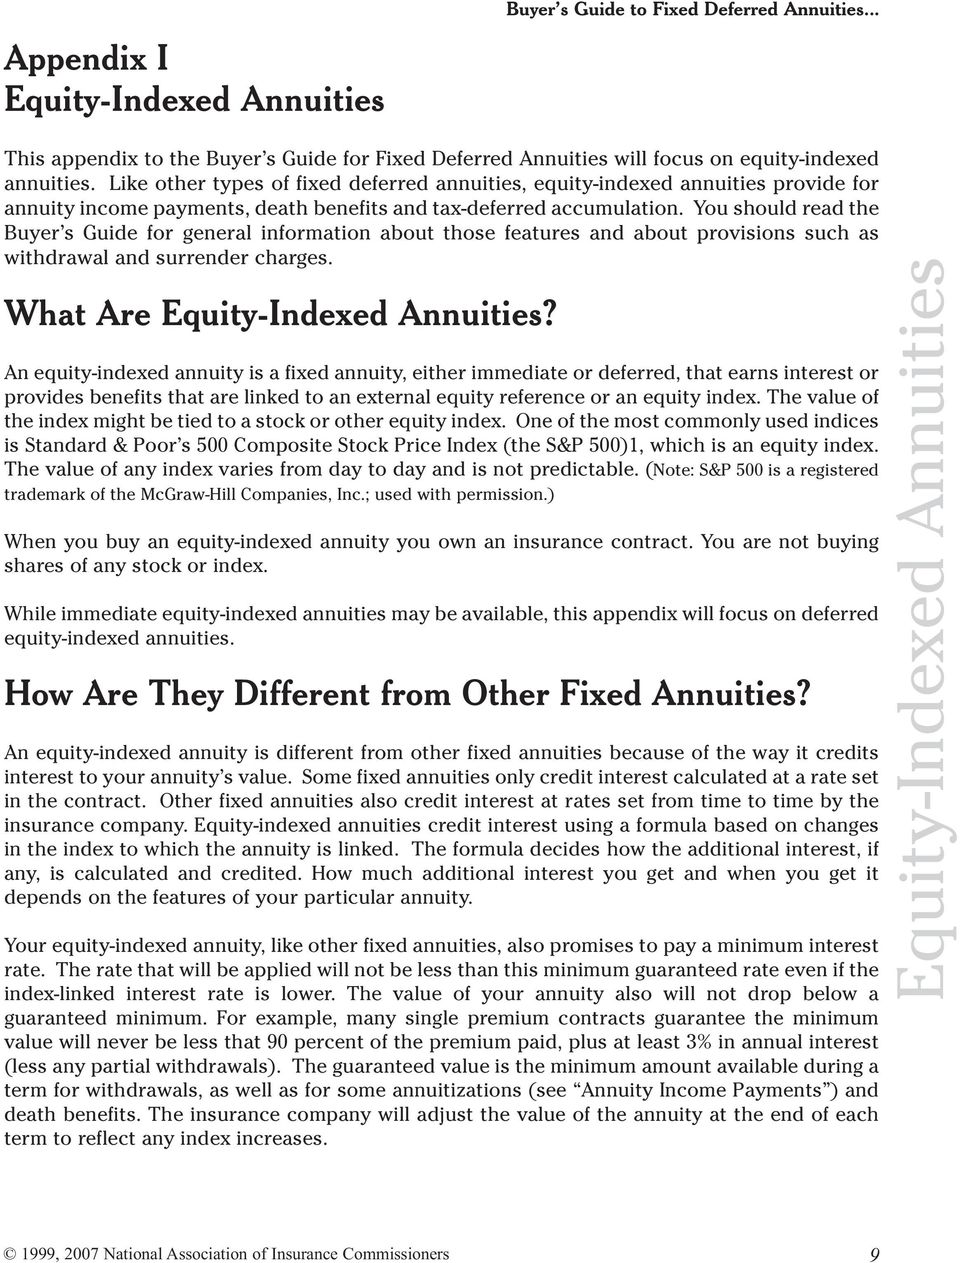 You should read the Buyer s Guide for general information about those features and about provisions such as withdrawal and surrender charges. What Are Equity-Indexed Annuities?